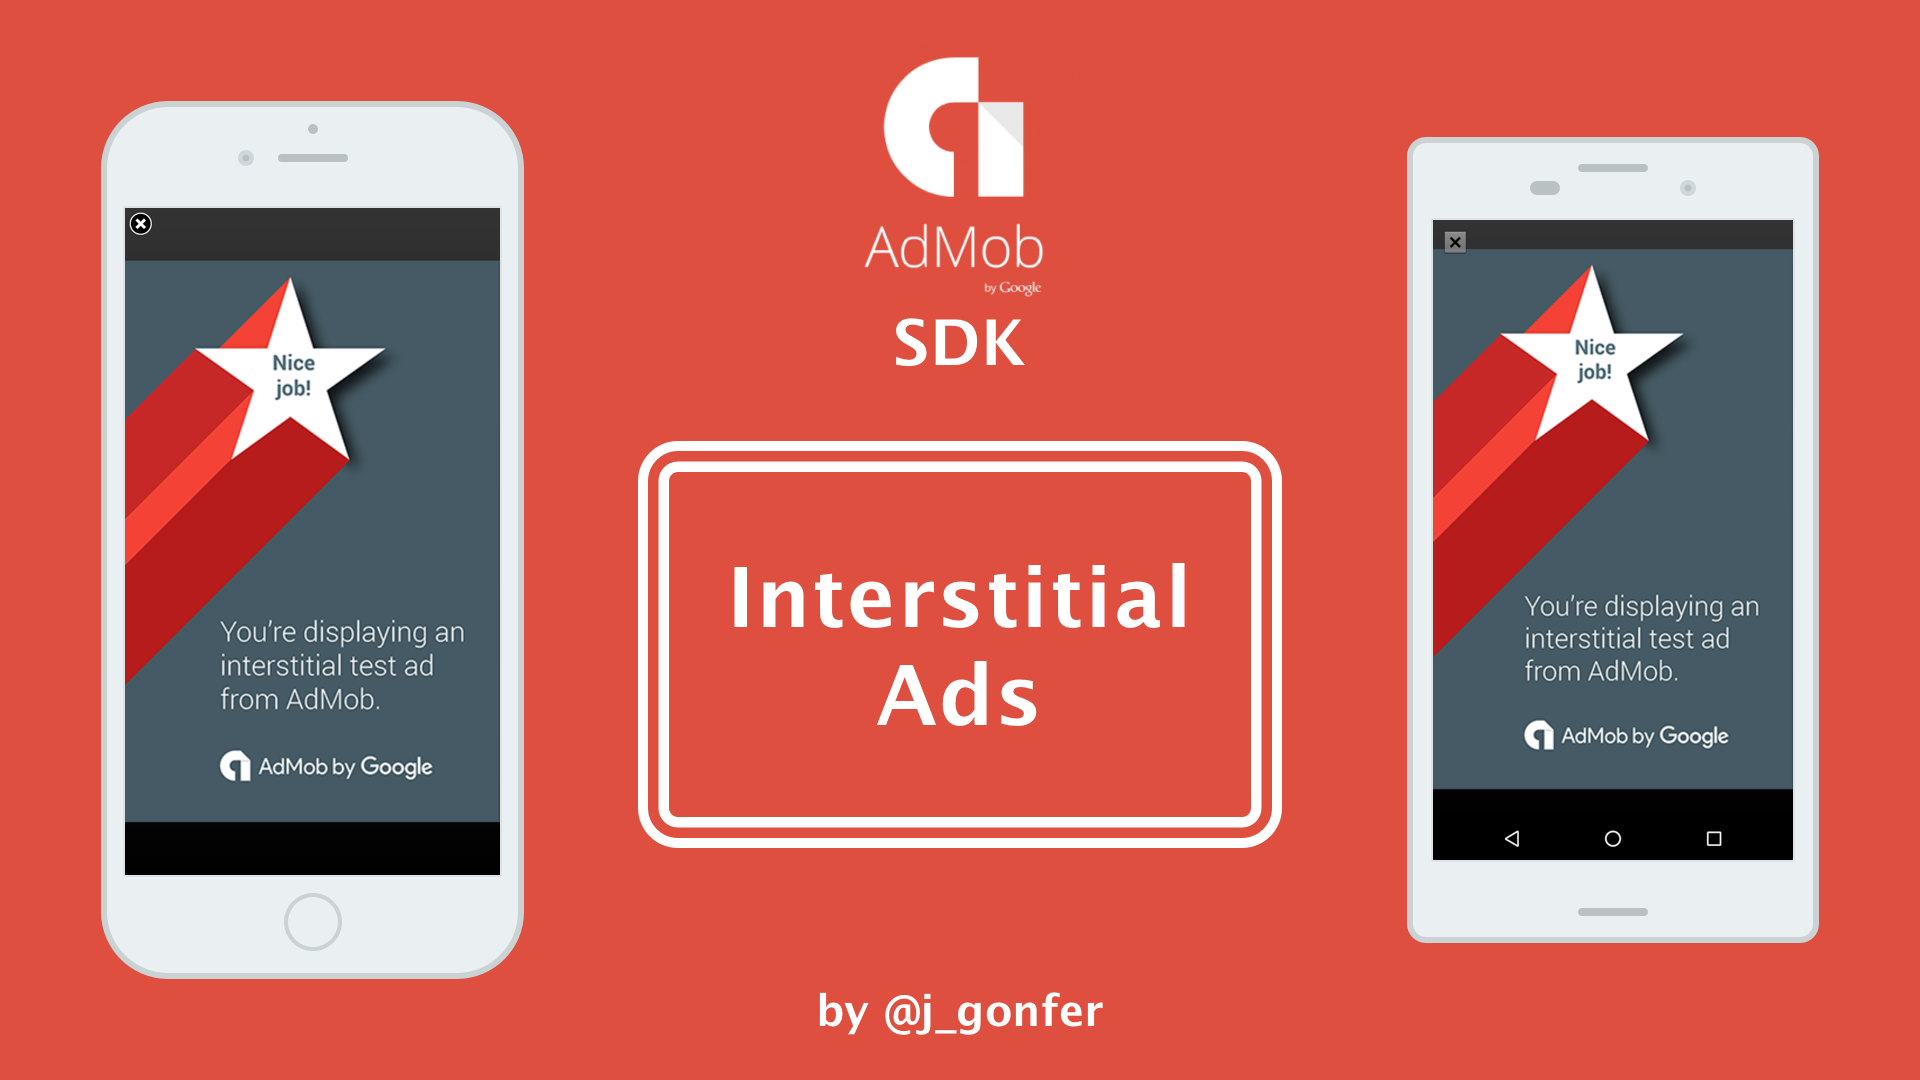 Firebase AdMob Interstitial Ads